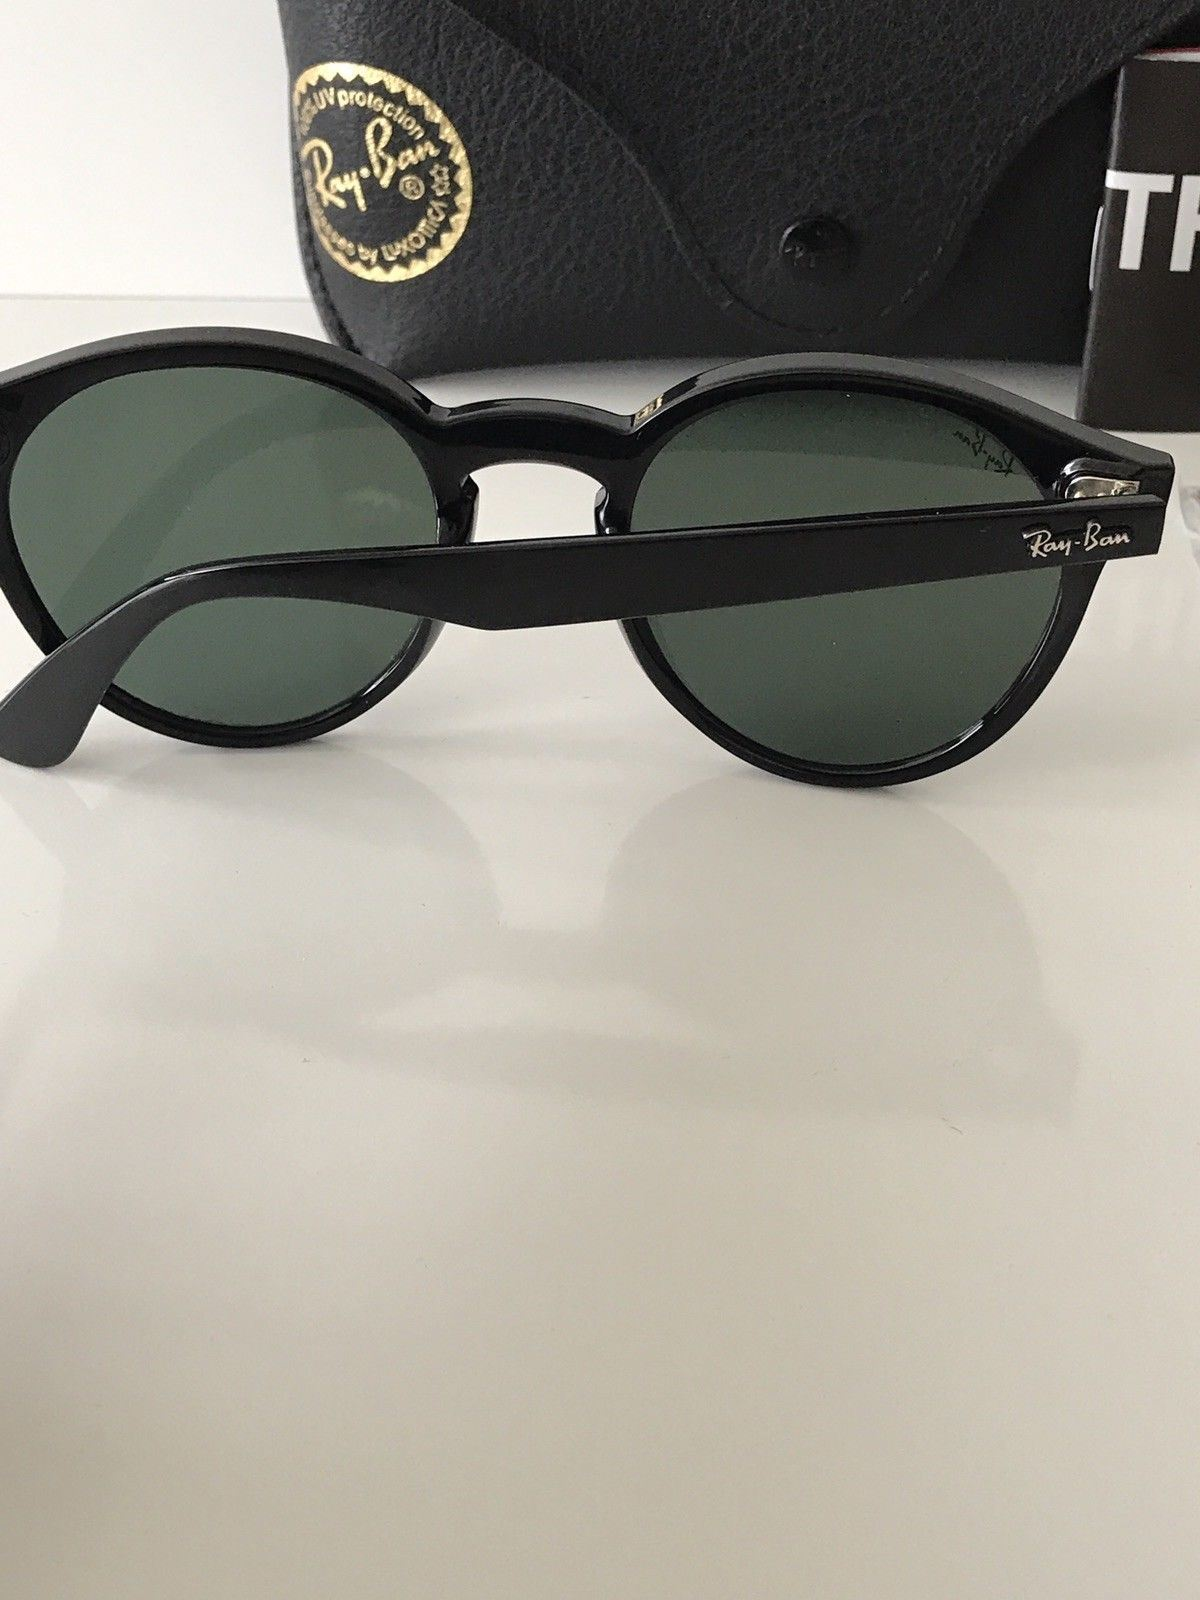 1b5e4d862d4 NWT Ray-Ban Sunglasses RB 4380-N 601 71 Black Frame Green Lenses ...